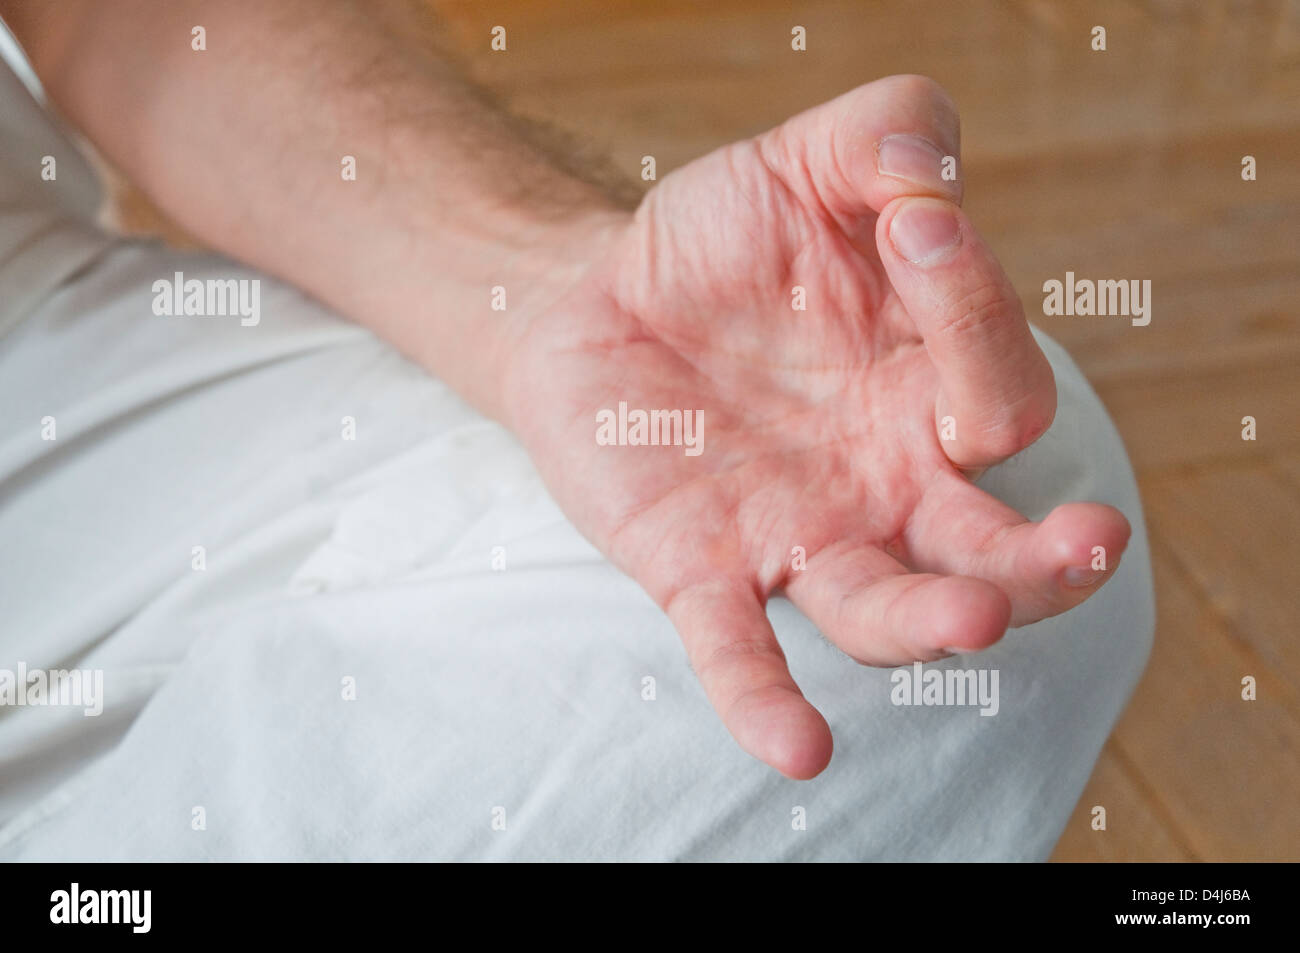 Man practicing yoga, sitting in the lotus position. Detail of his hand. - Stock Image